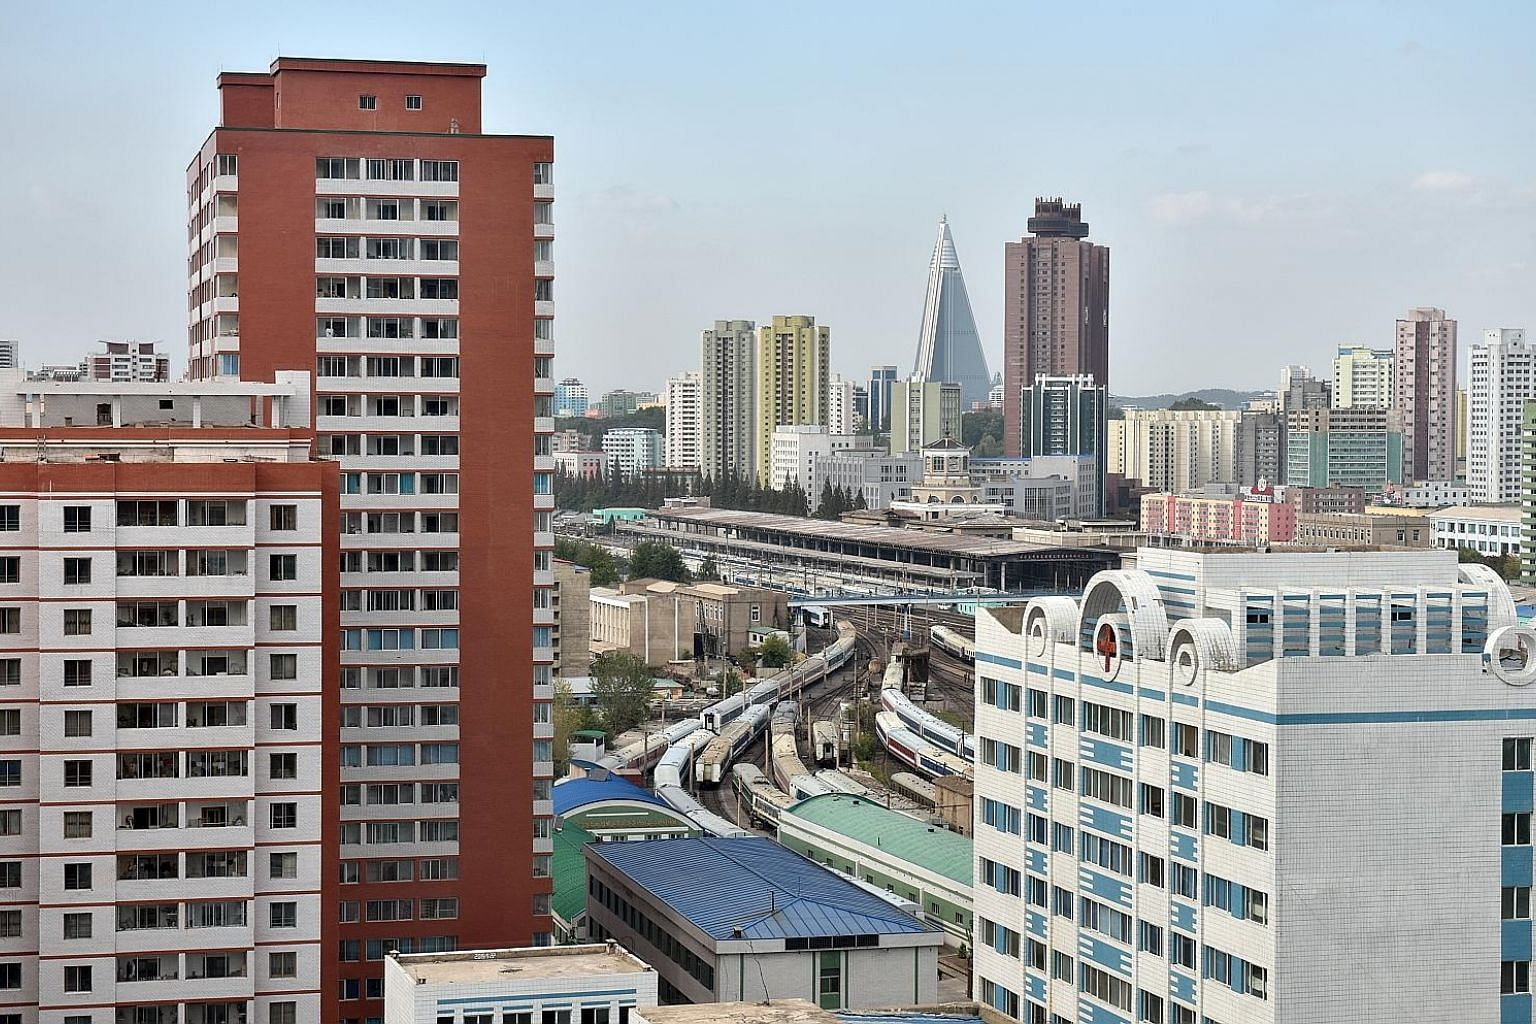 Residents living on the top floors of some high-rise apartment buildings in central Pyongyang overlook government buildings where North Korean leader Kim Jong Un and other party elites work, a news report said.